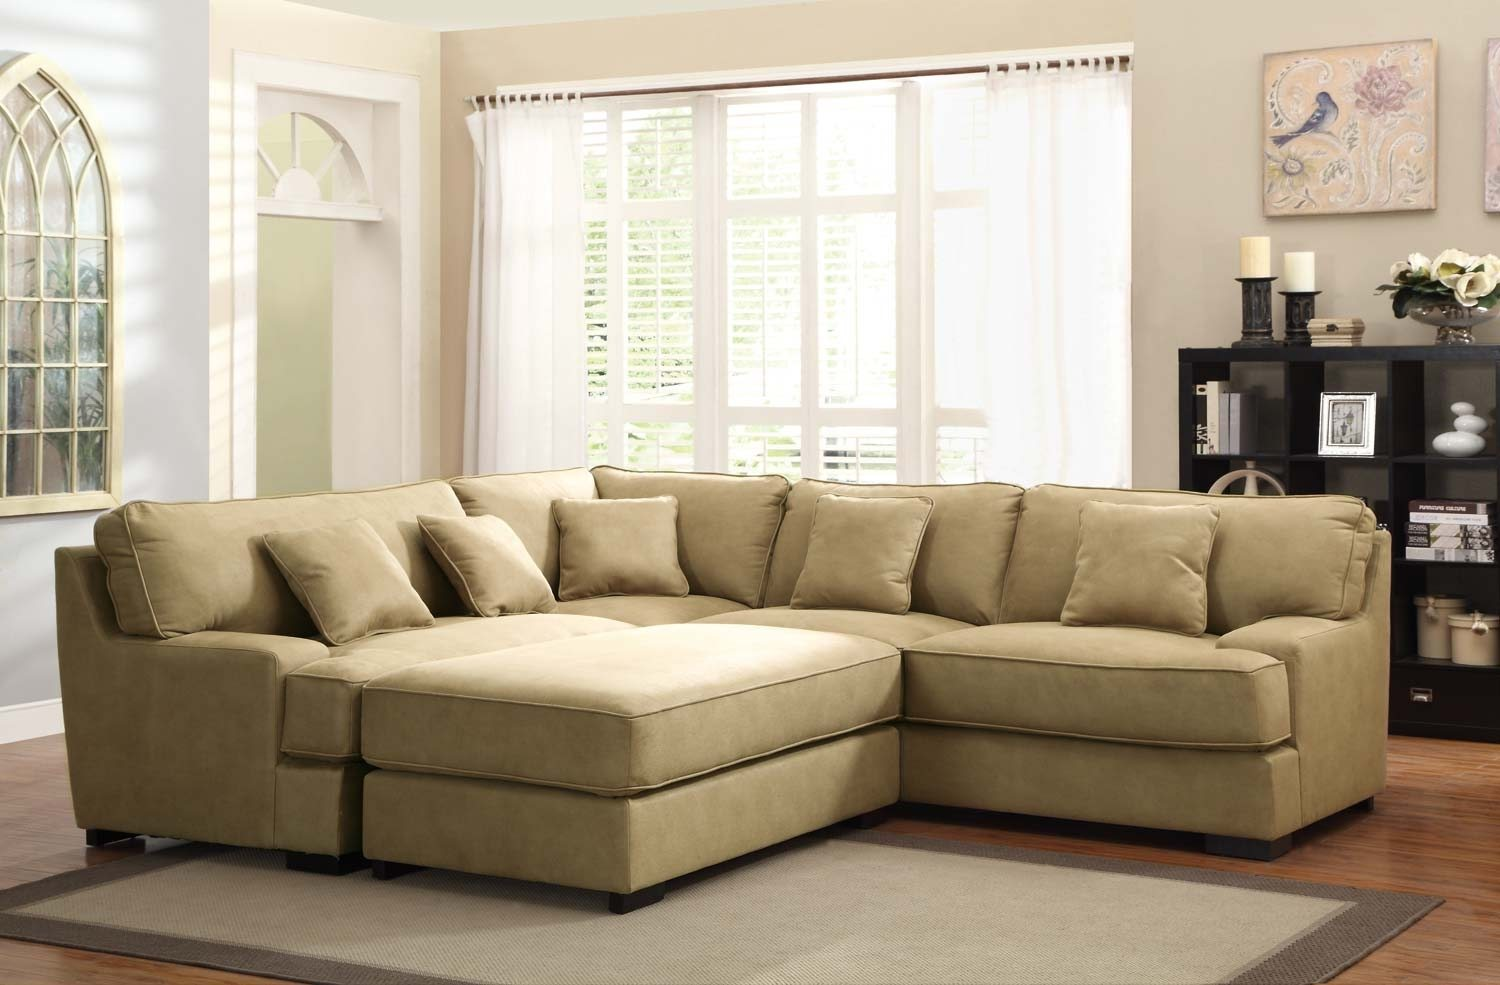 Epic Oversized Sectional Sofa 44 With Additional Modern Sofa Ideas with Oversized Sectional Sofa